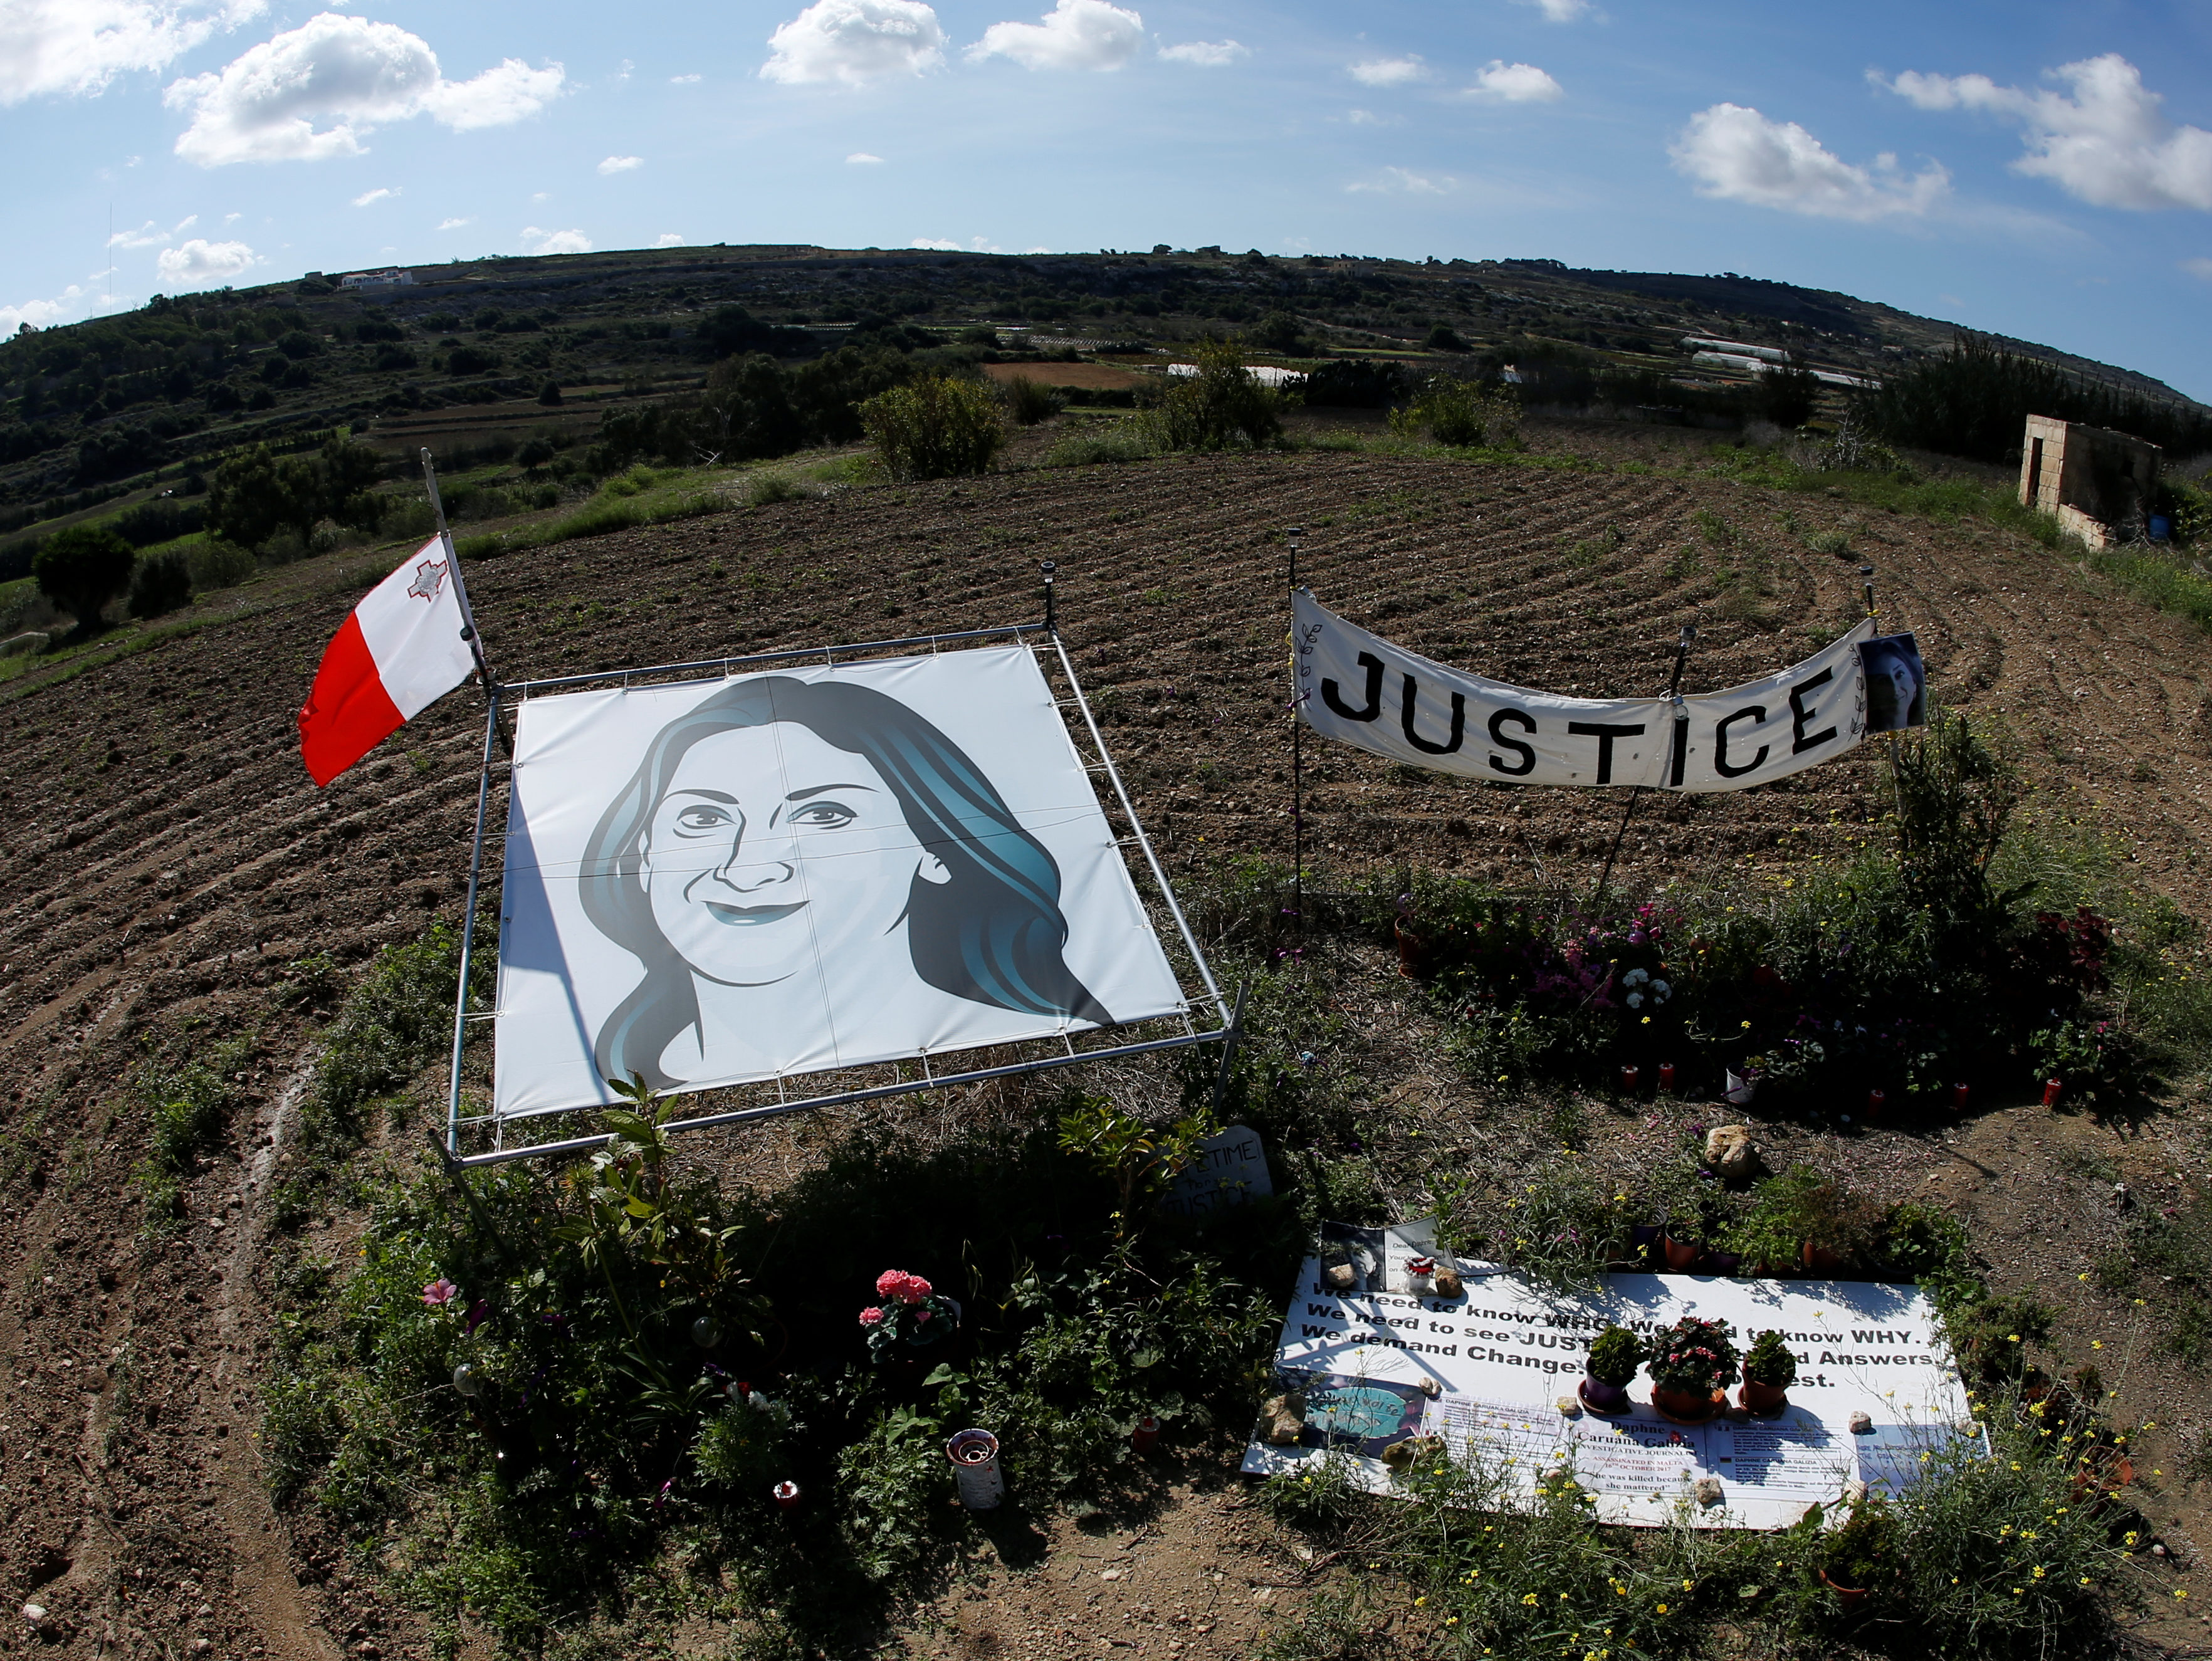 Press freedom groups travel to Malta to call for inquiry into killing of journalist Daphne Caruana Galizia one year on since her murder